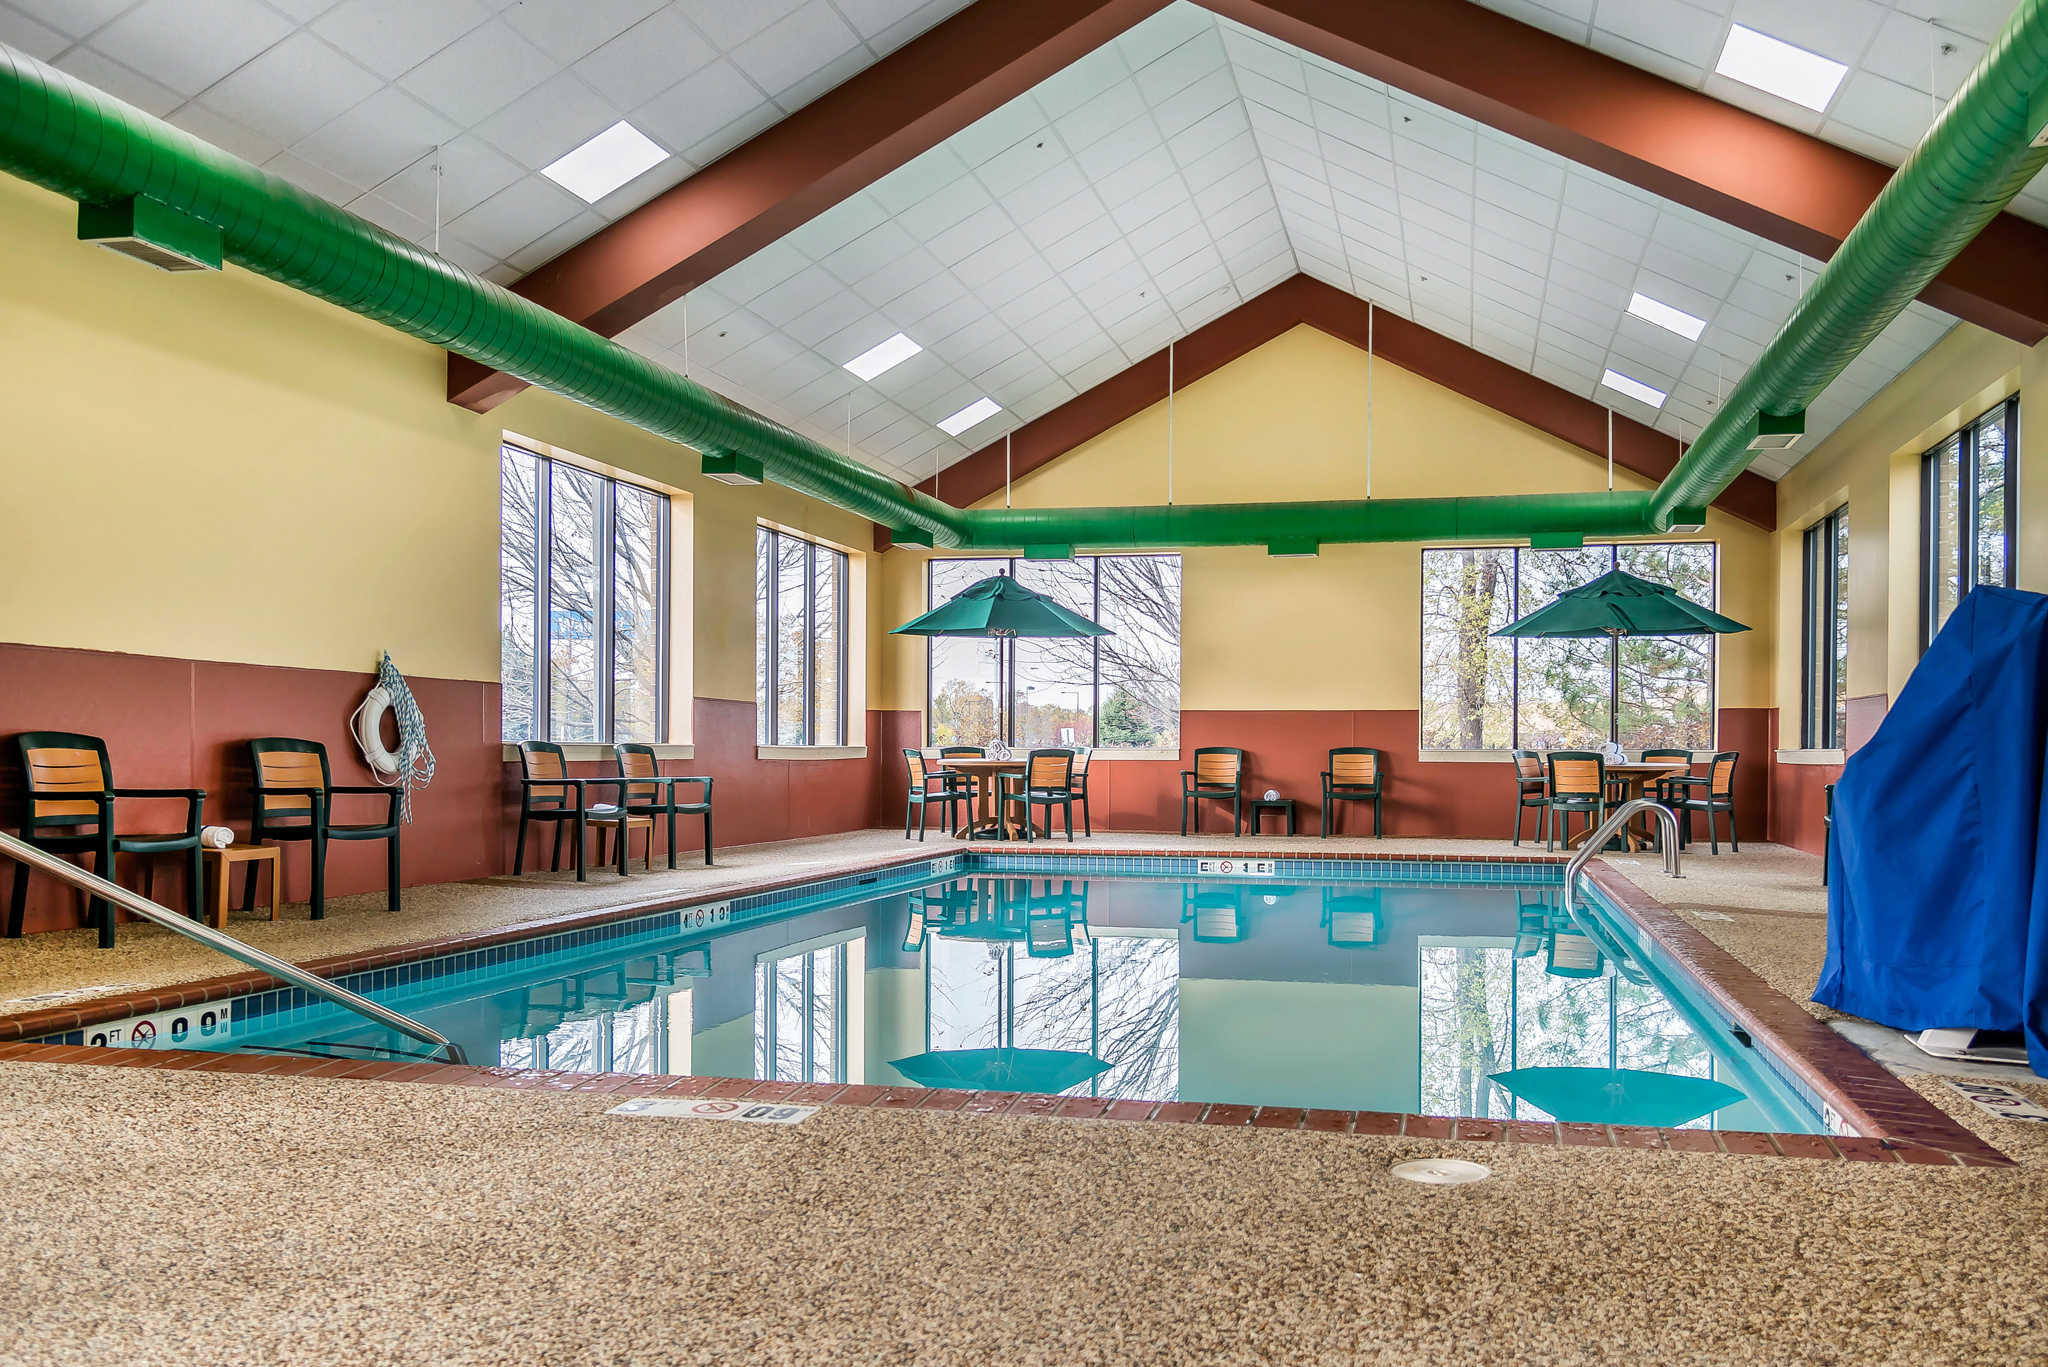 Hotels Near Mall Of America With Hot Tub In Room